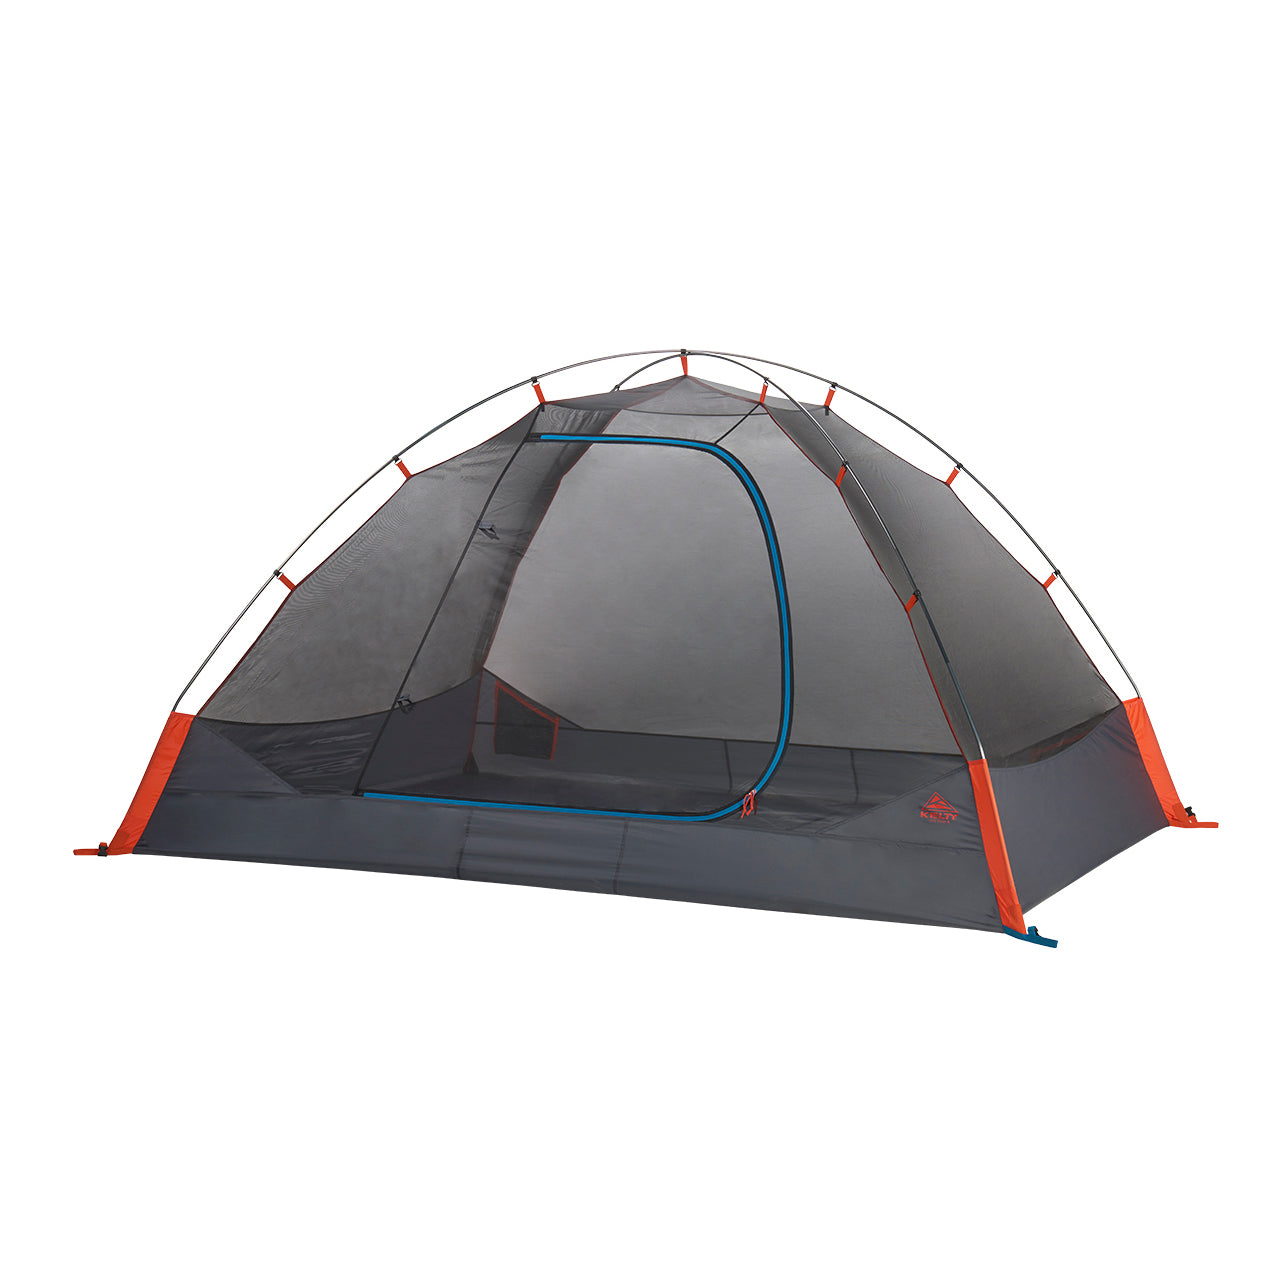 kelty late start 4 person tent no fly front view in color dark grey with orange accents